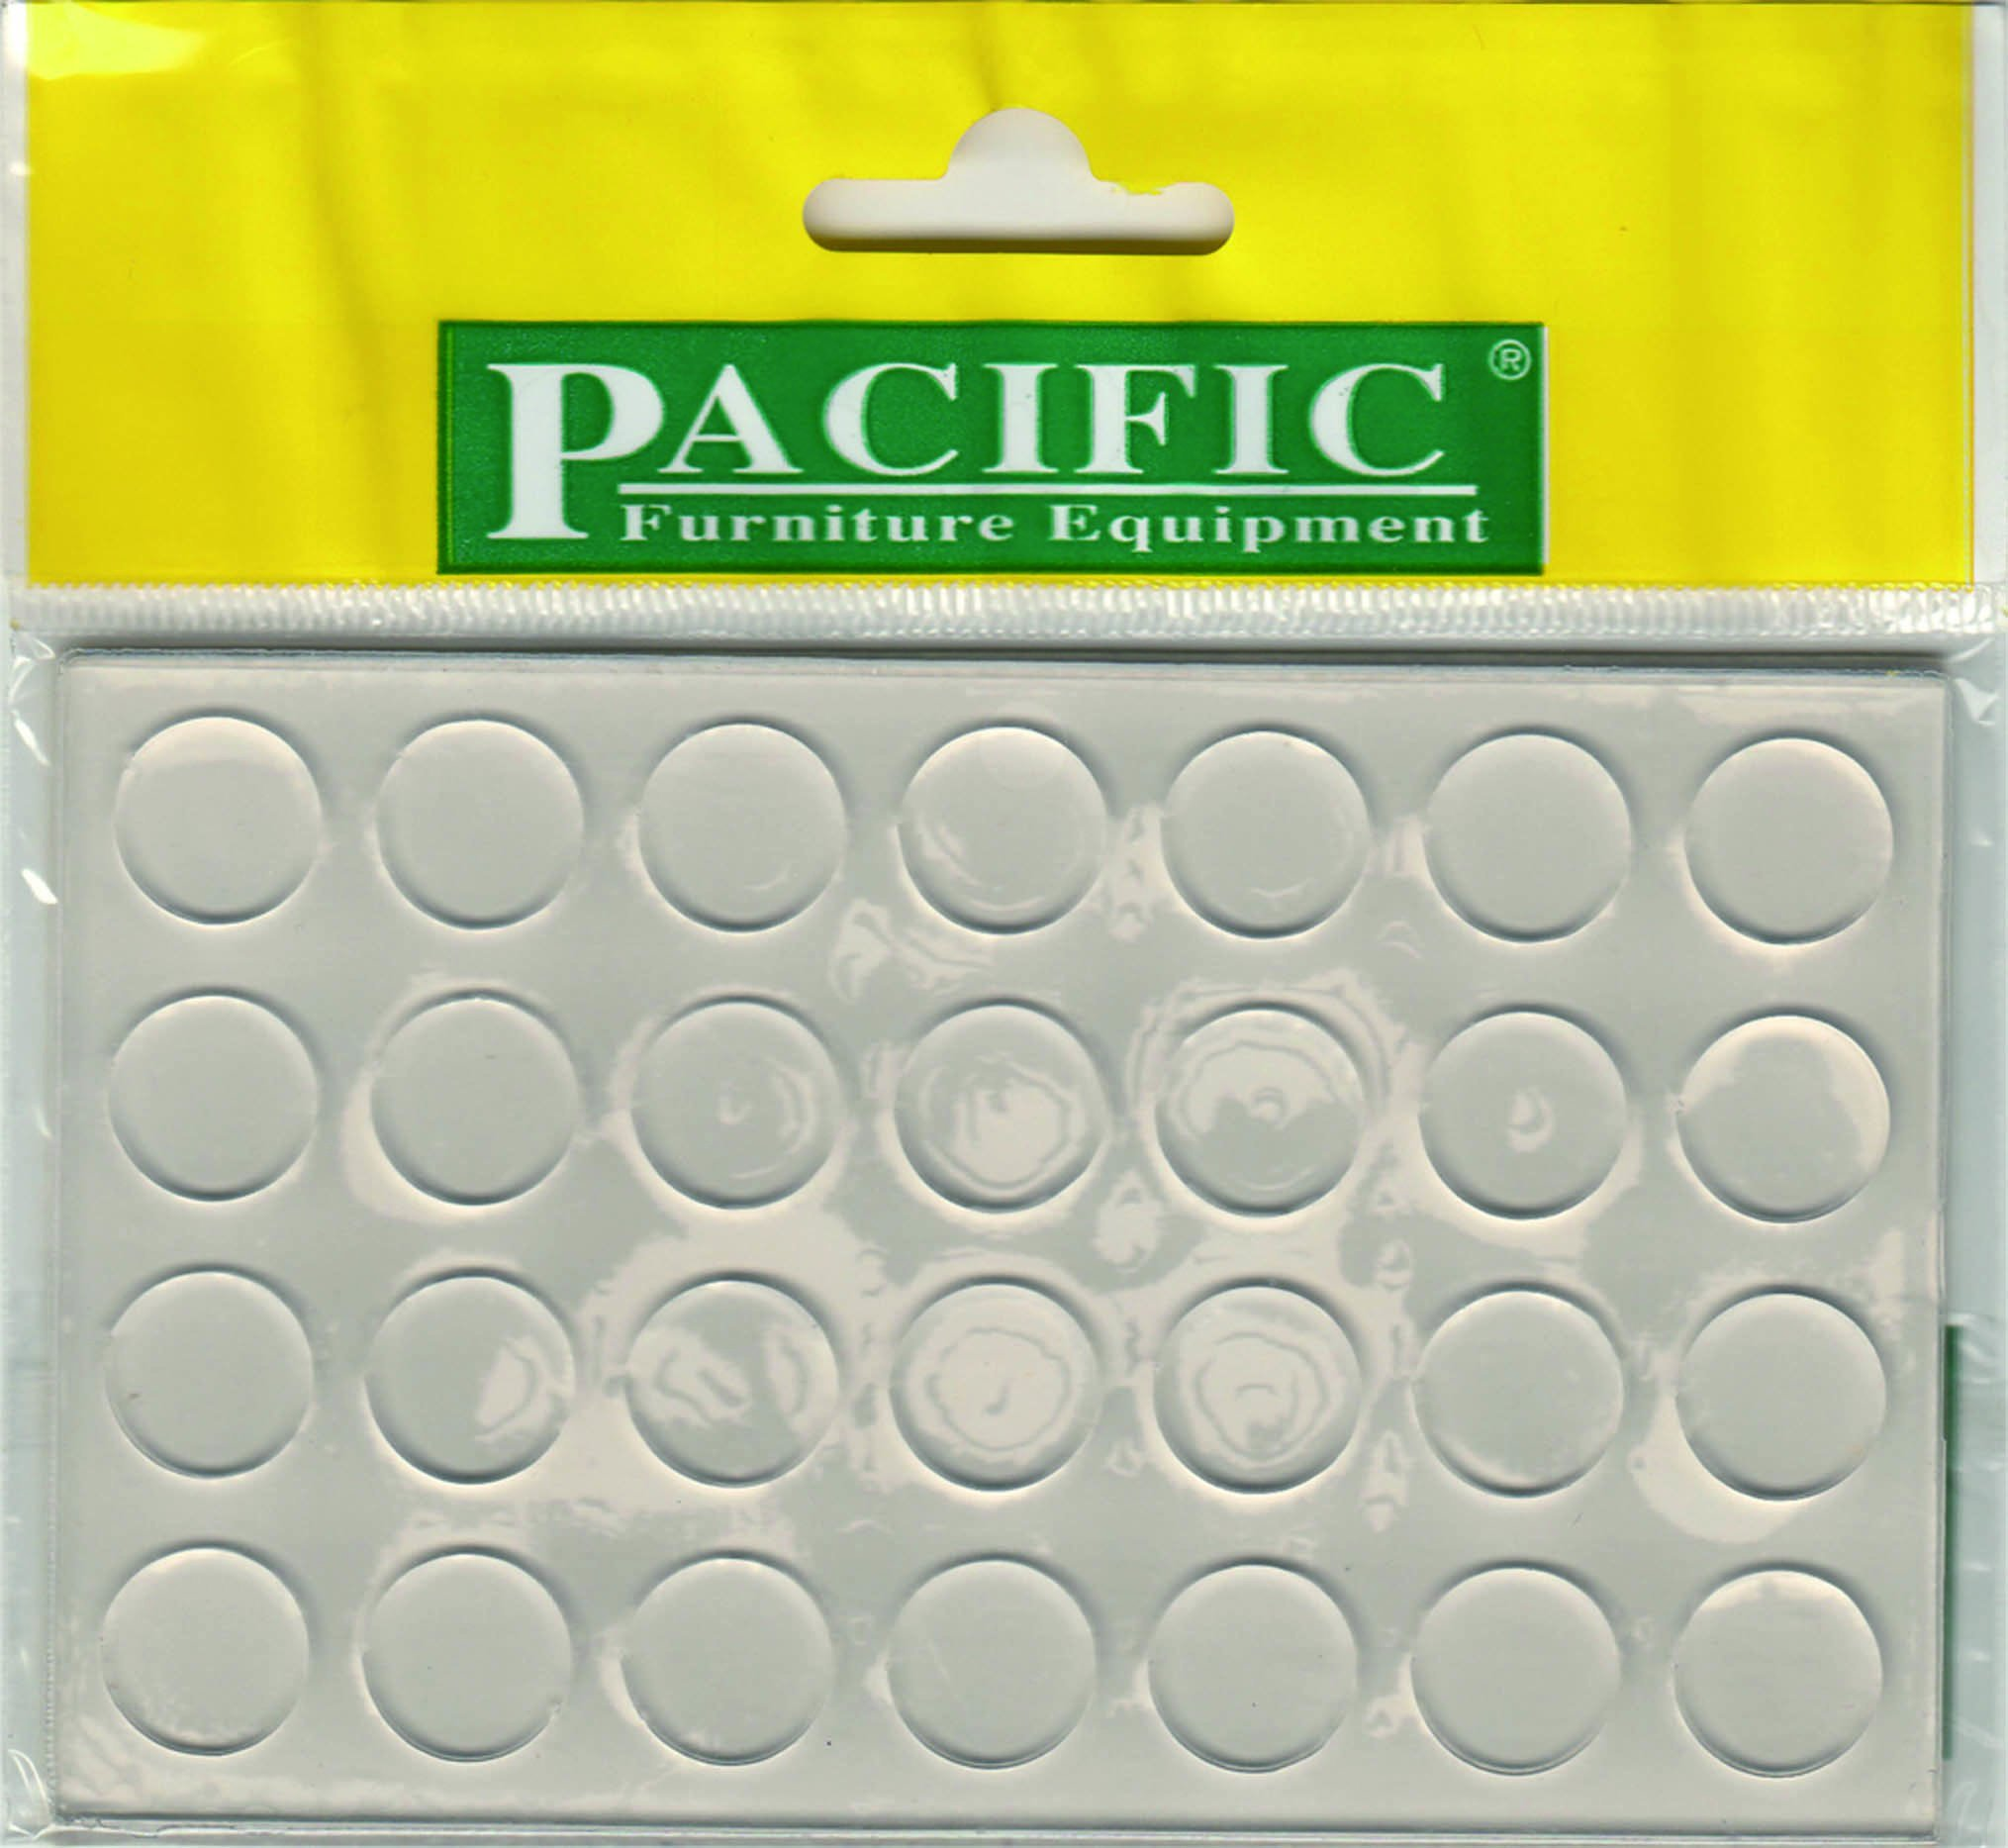 Silicone Non Slip Glass Protective Table Pads